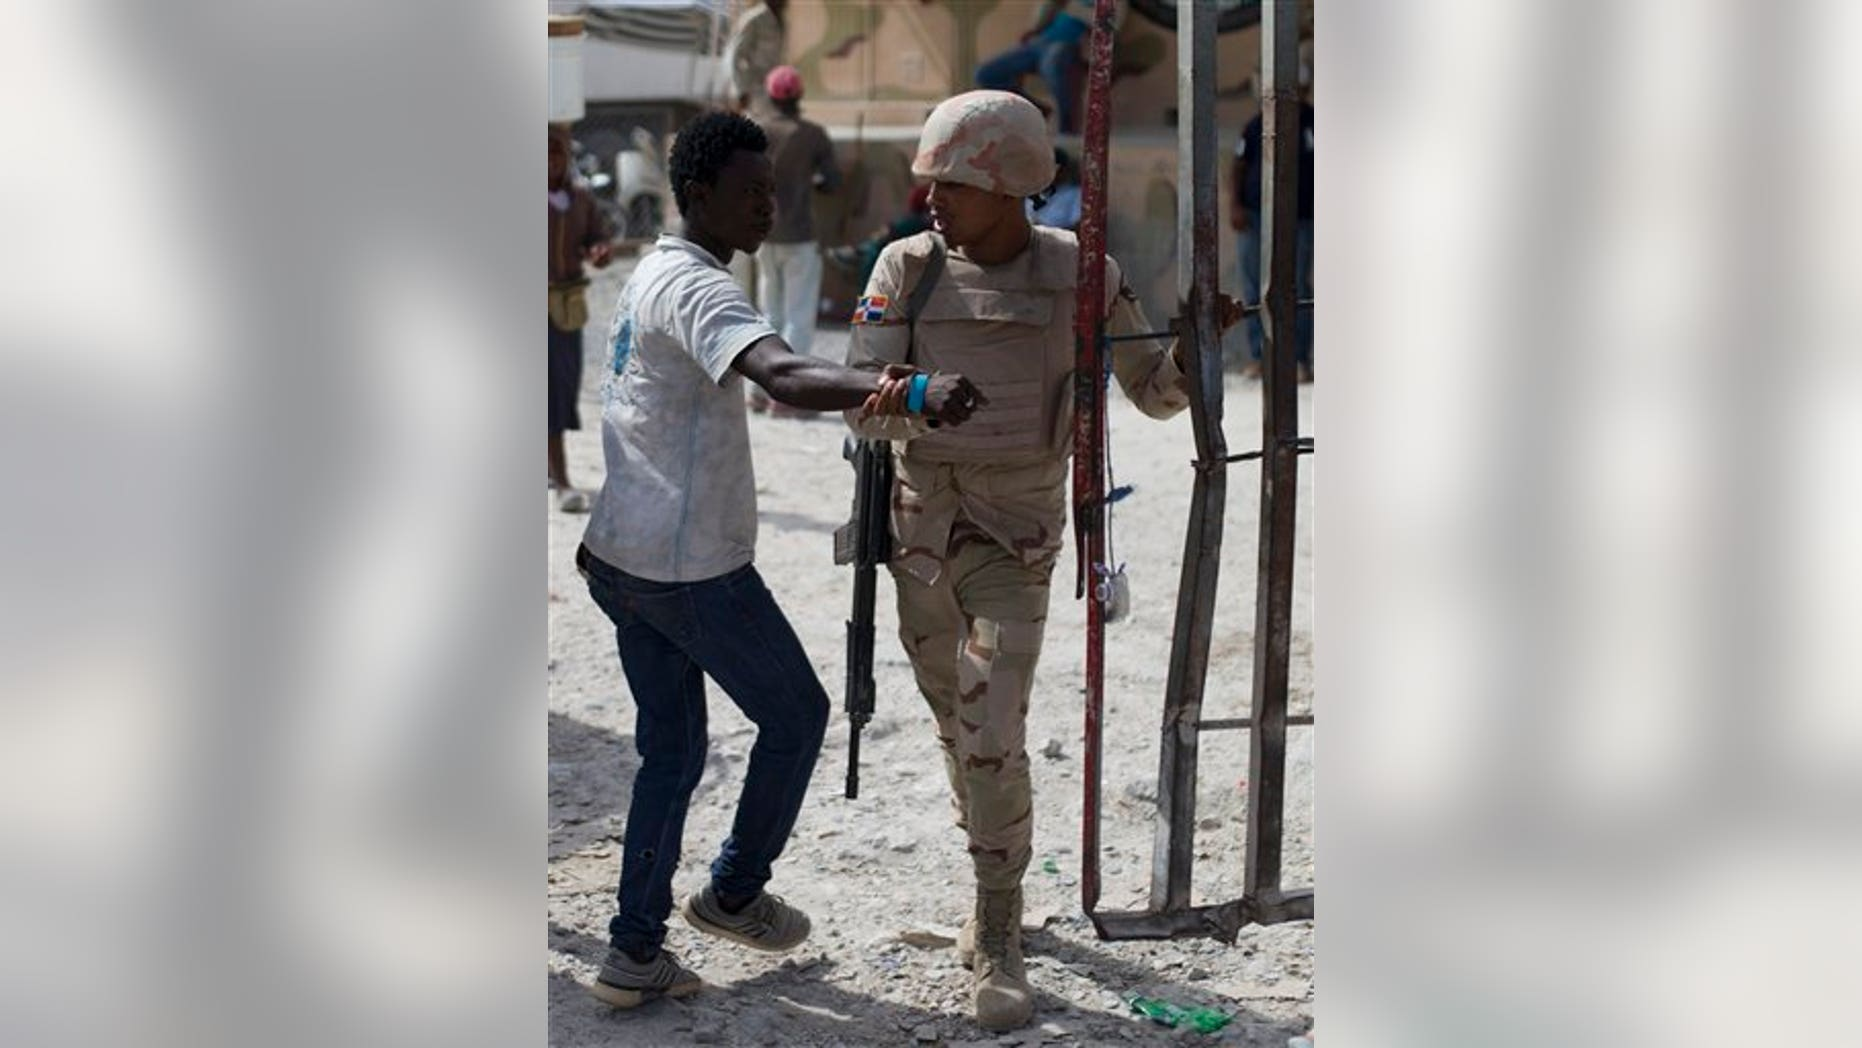 A Haitian man who tried to slip through is pulled back toward the Haitian side of the border by a Dominican soldier, in Malpasse, Haiti, Wednesday, June 17, 2015.